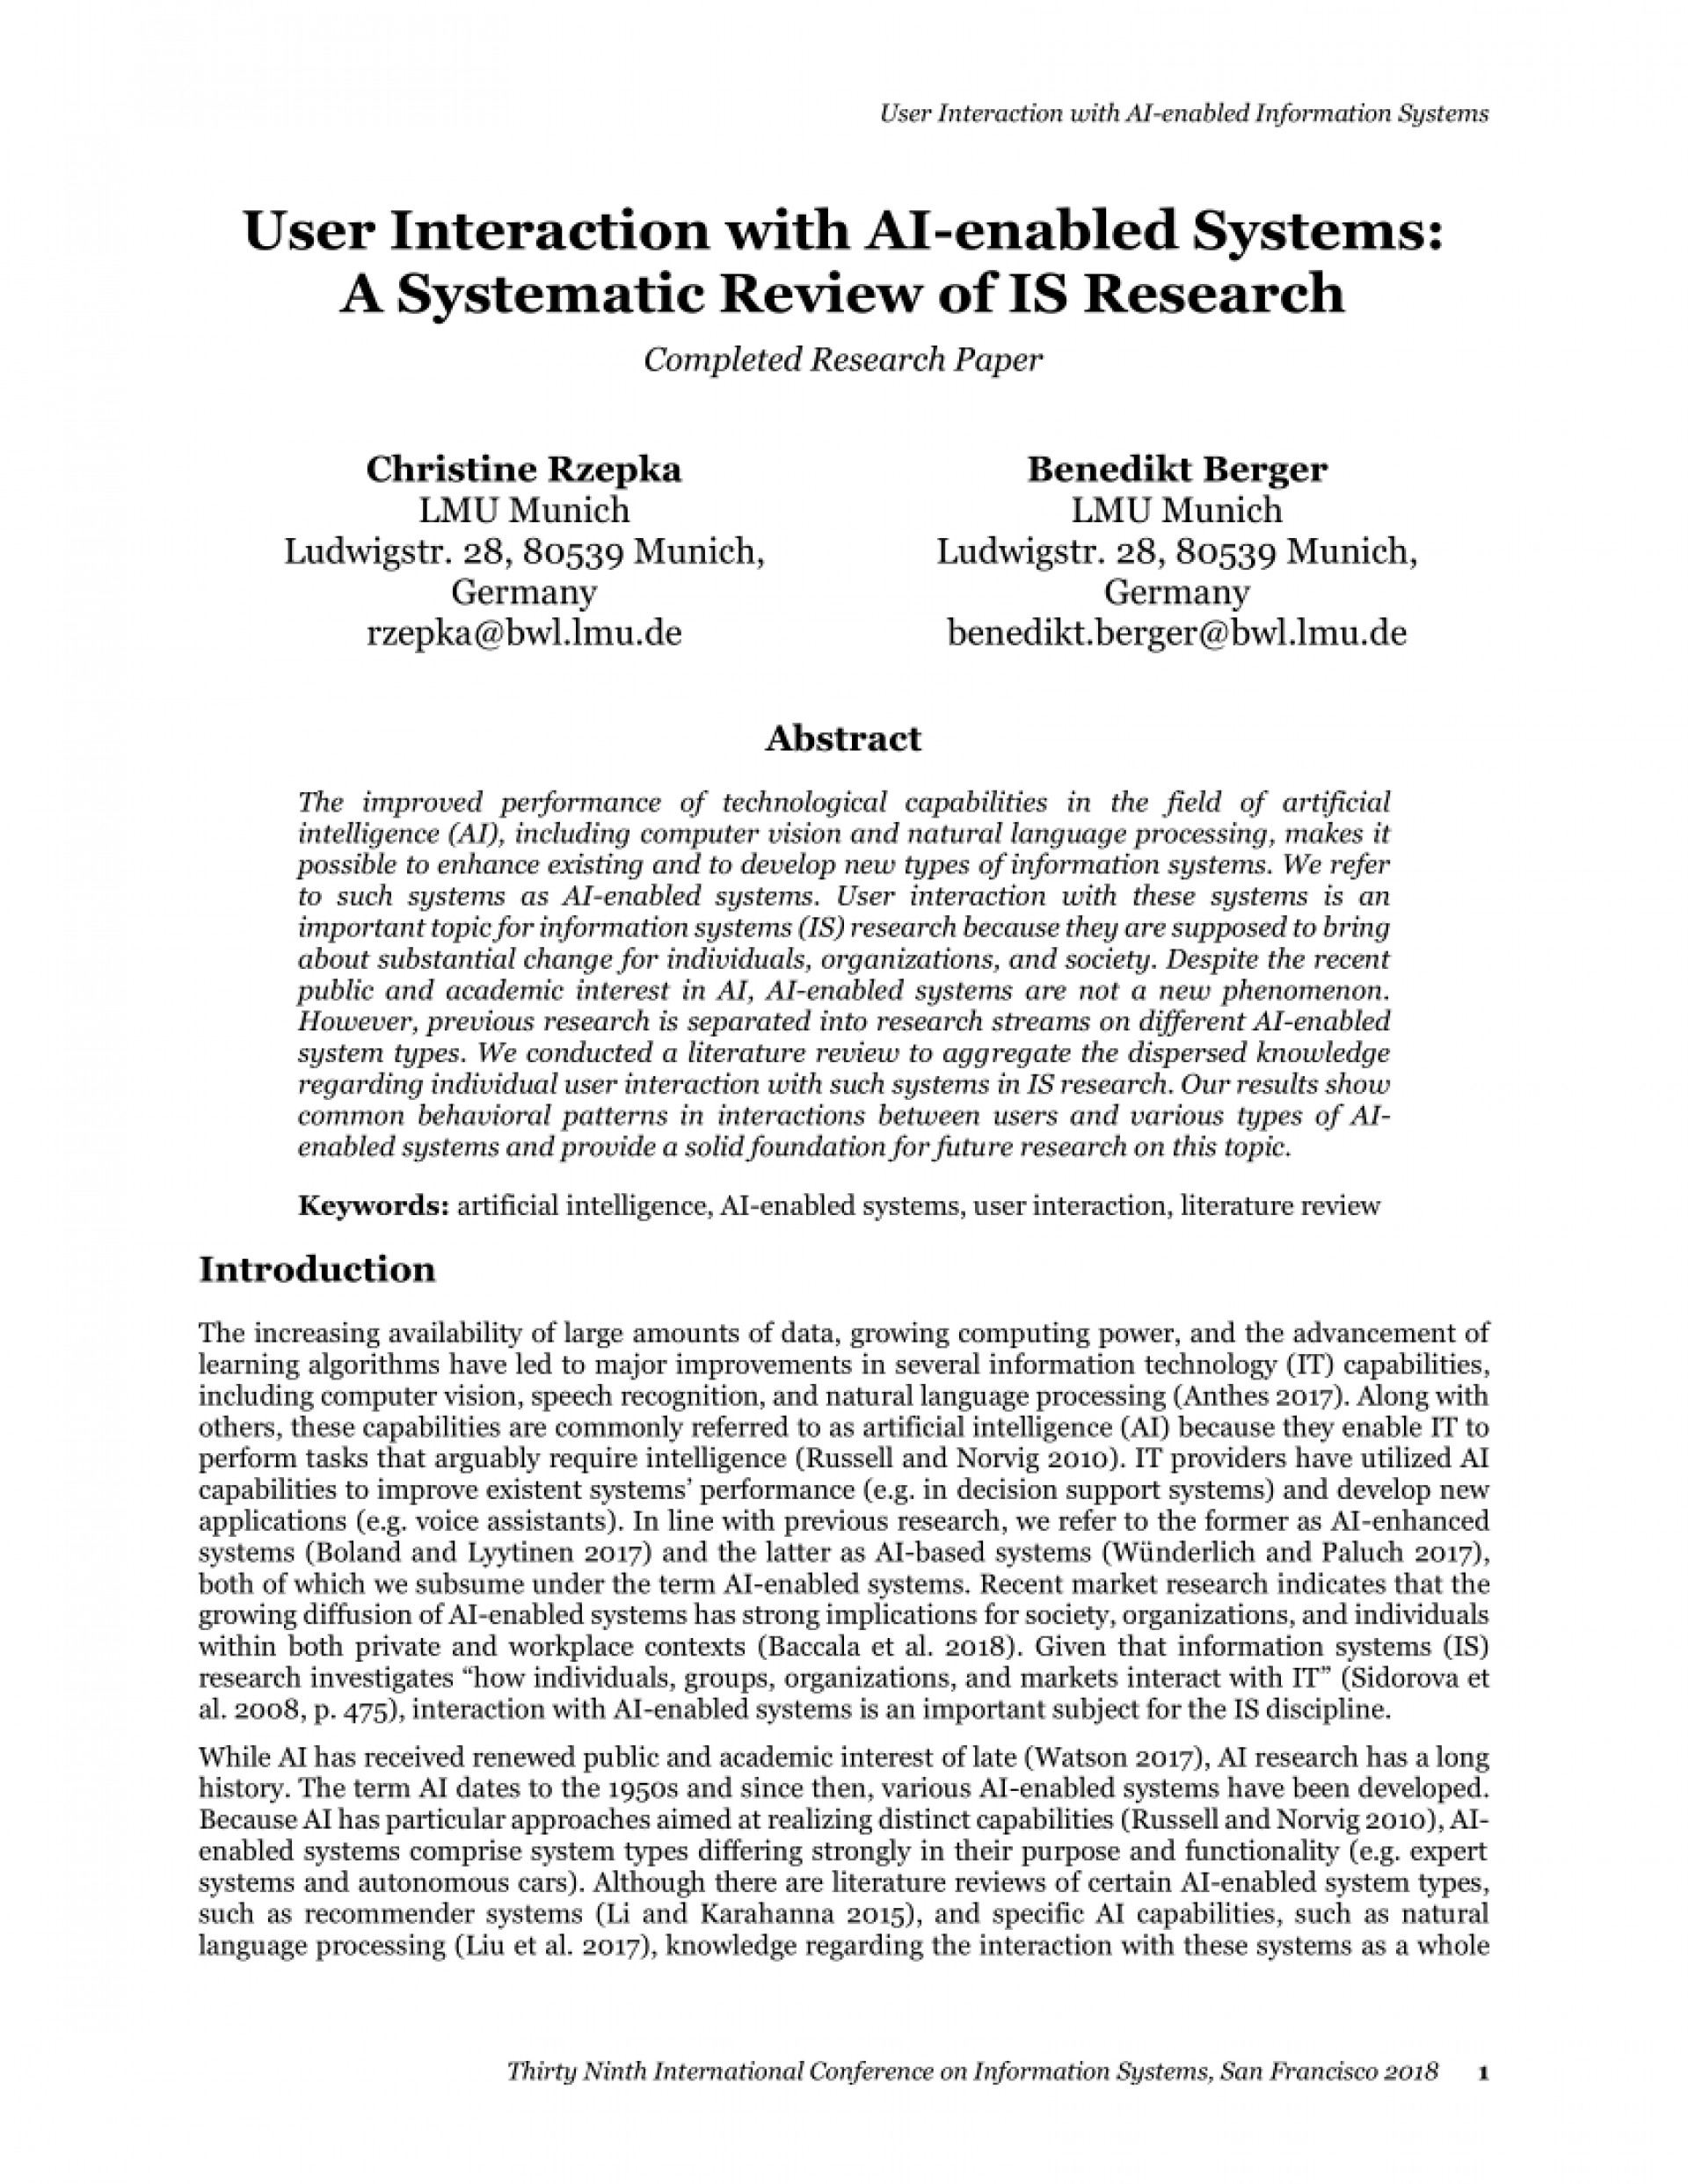 004 Artificial Intelligence Research Paper Pdf Archaicawful 2018 1920